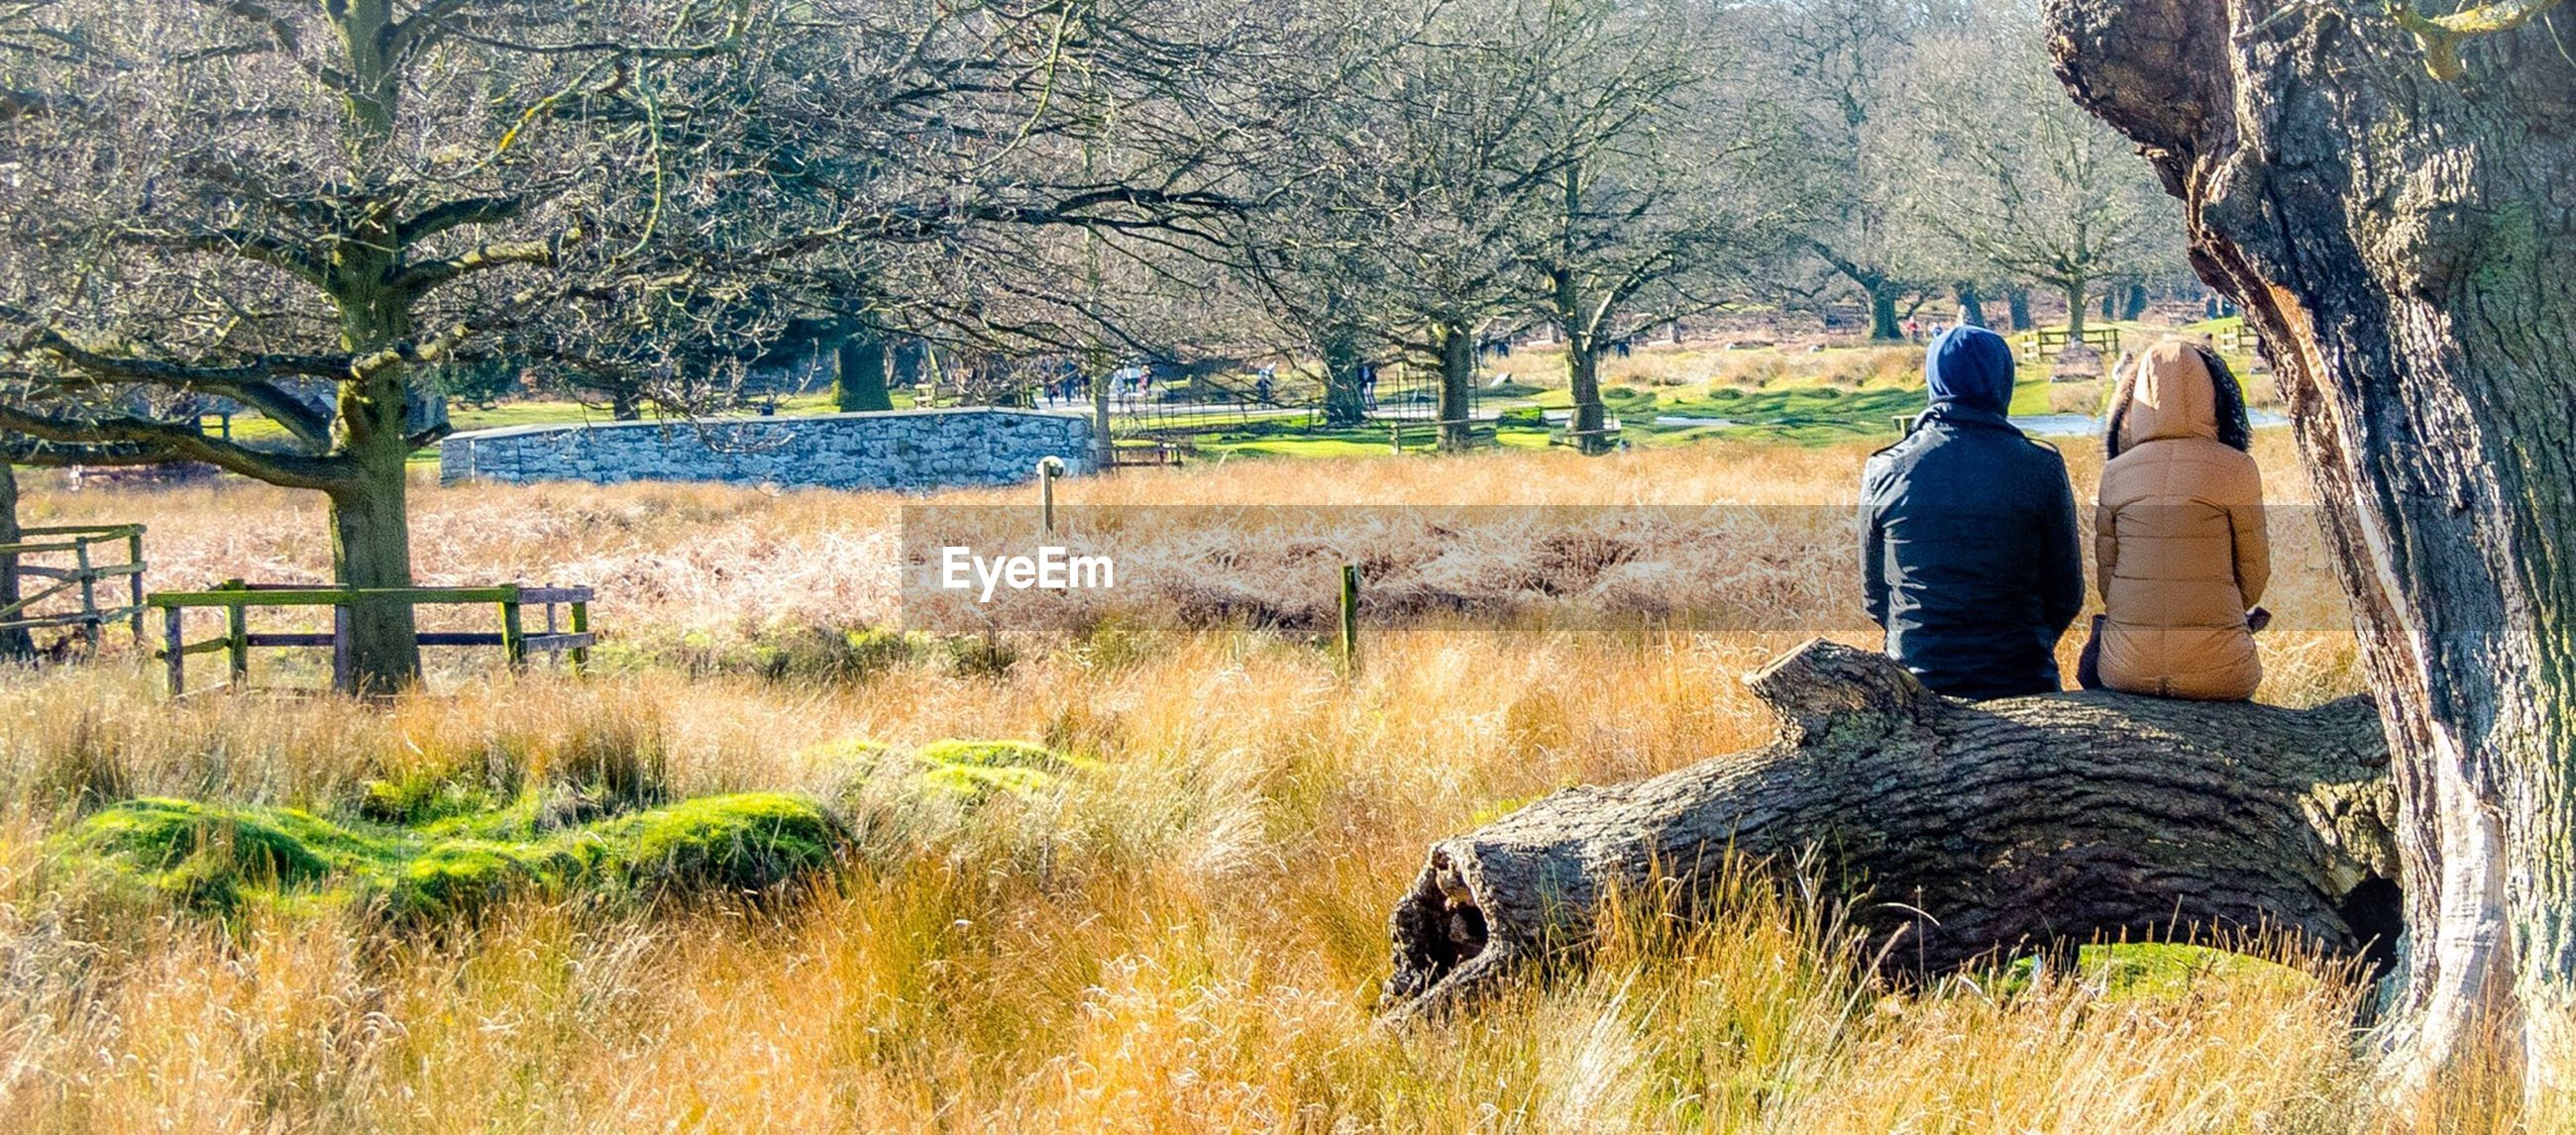 Panoramic view people sitting on tree trunk at bradgate park